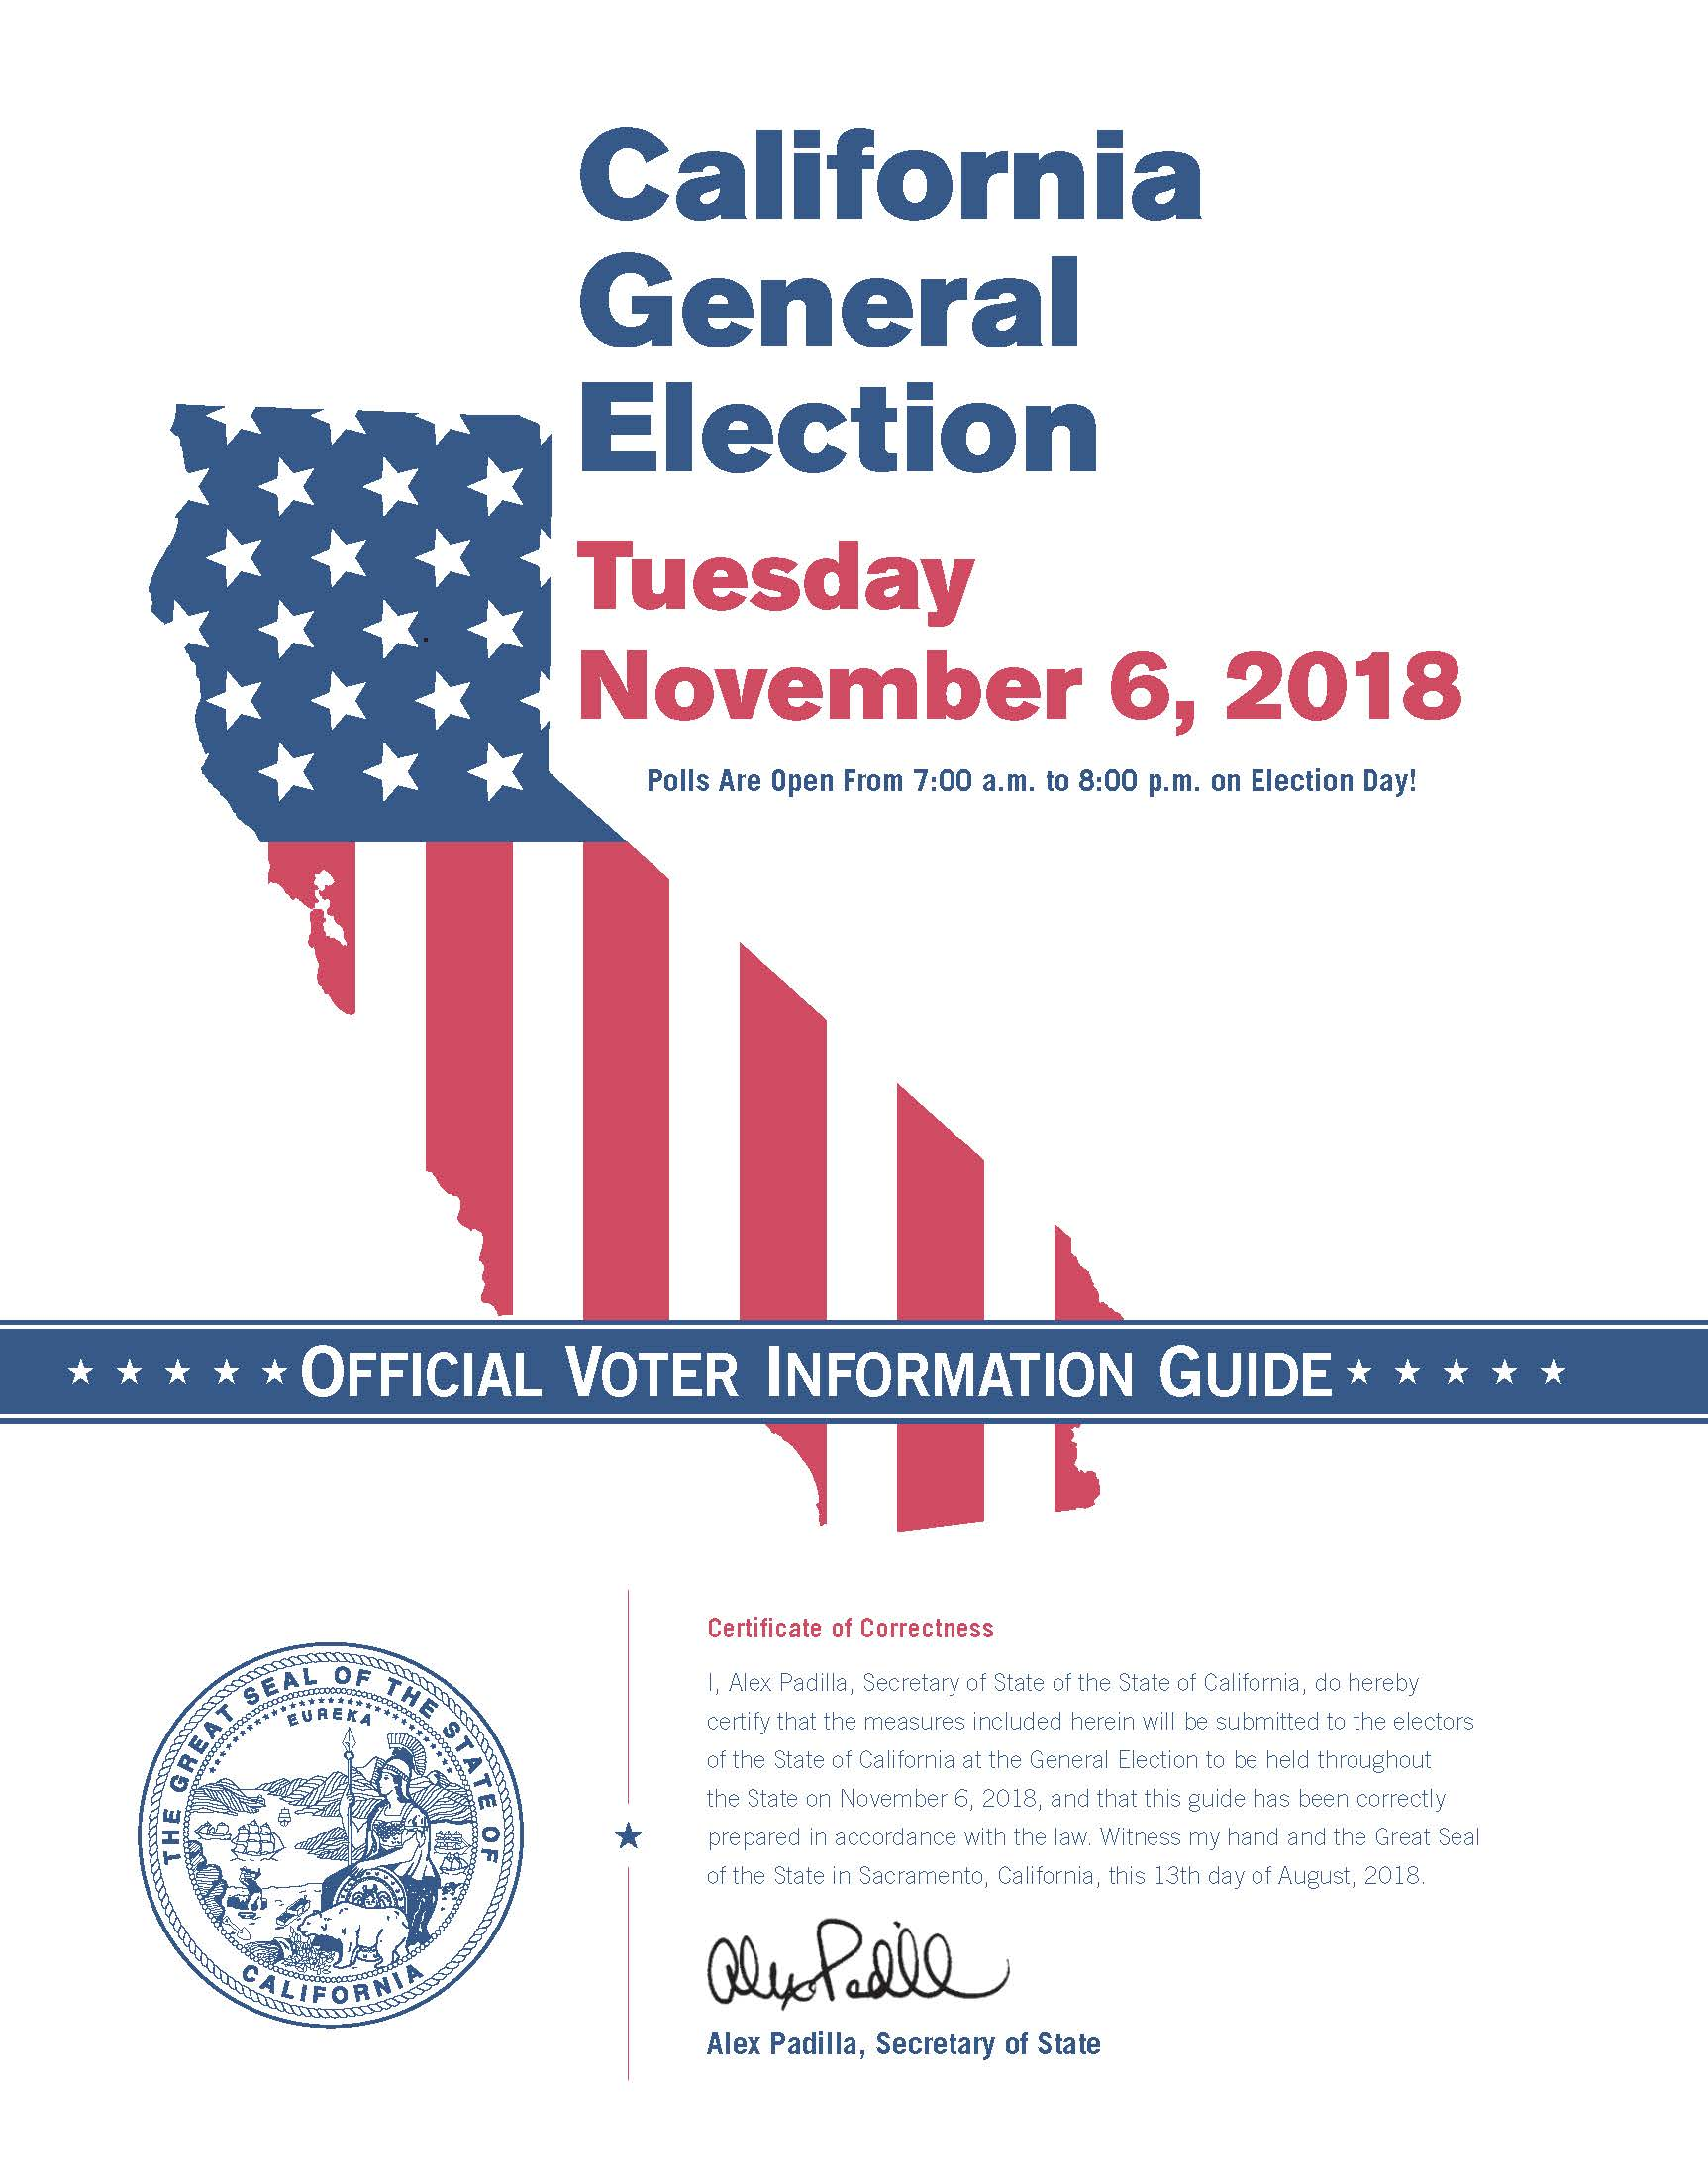 Voter Information Guide